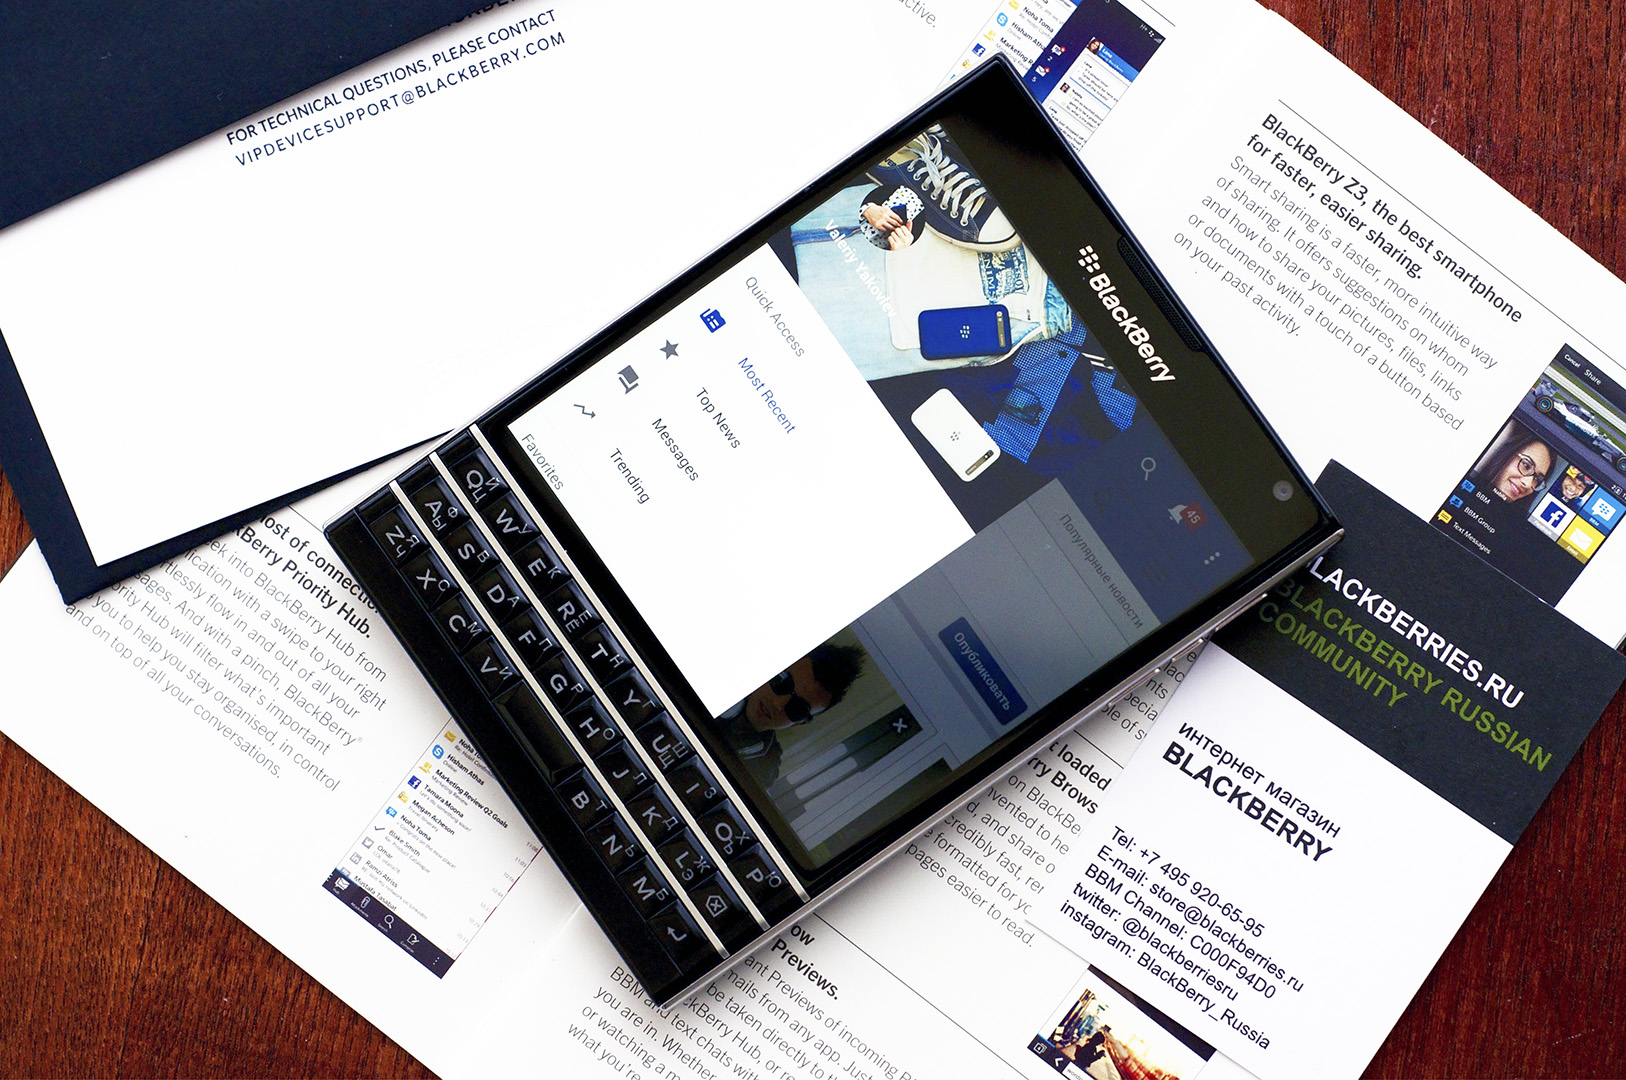 BlackBerry-Priv-Apps-1-feb-5